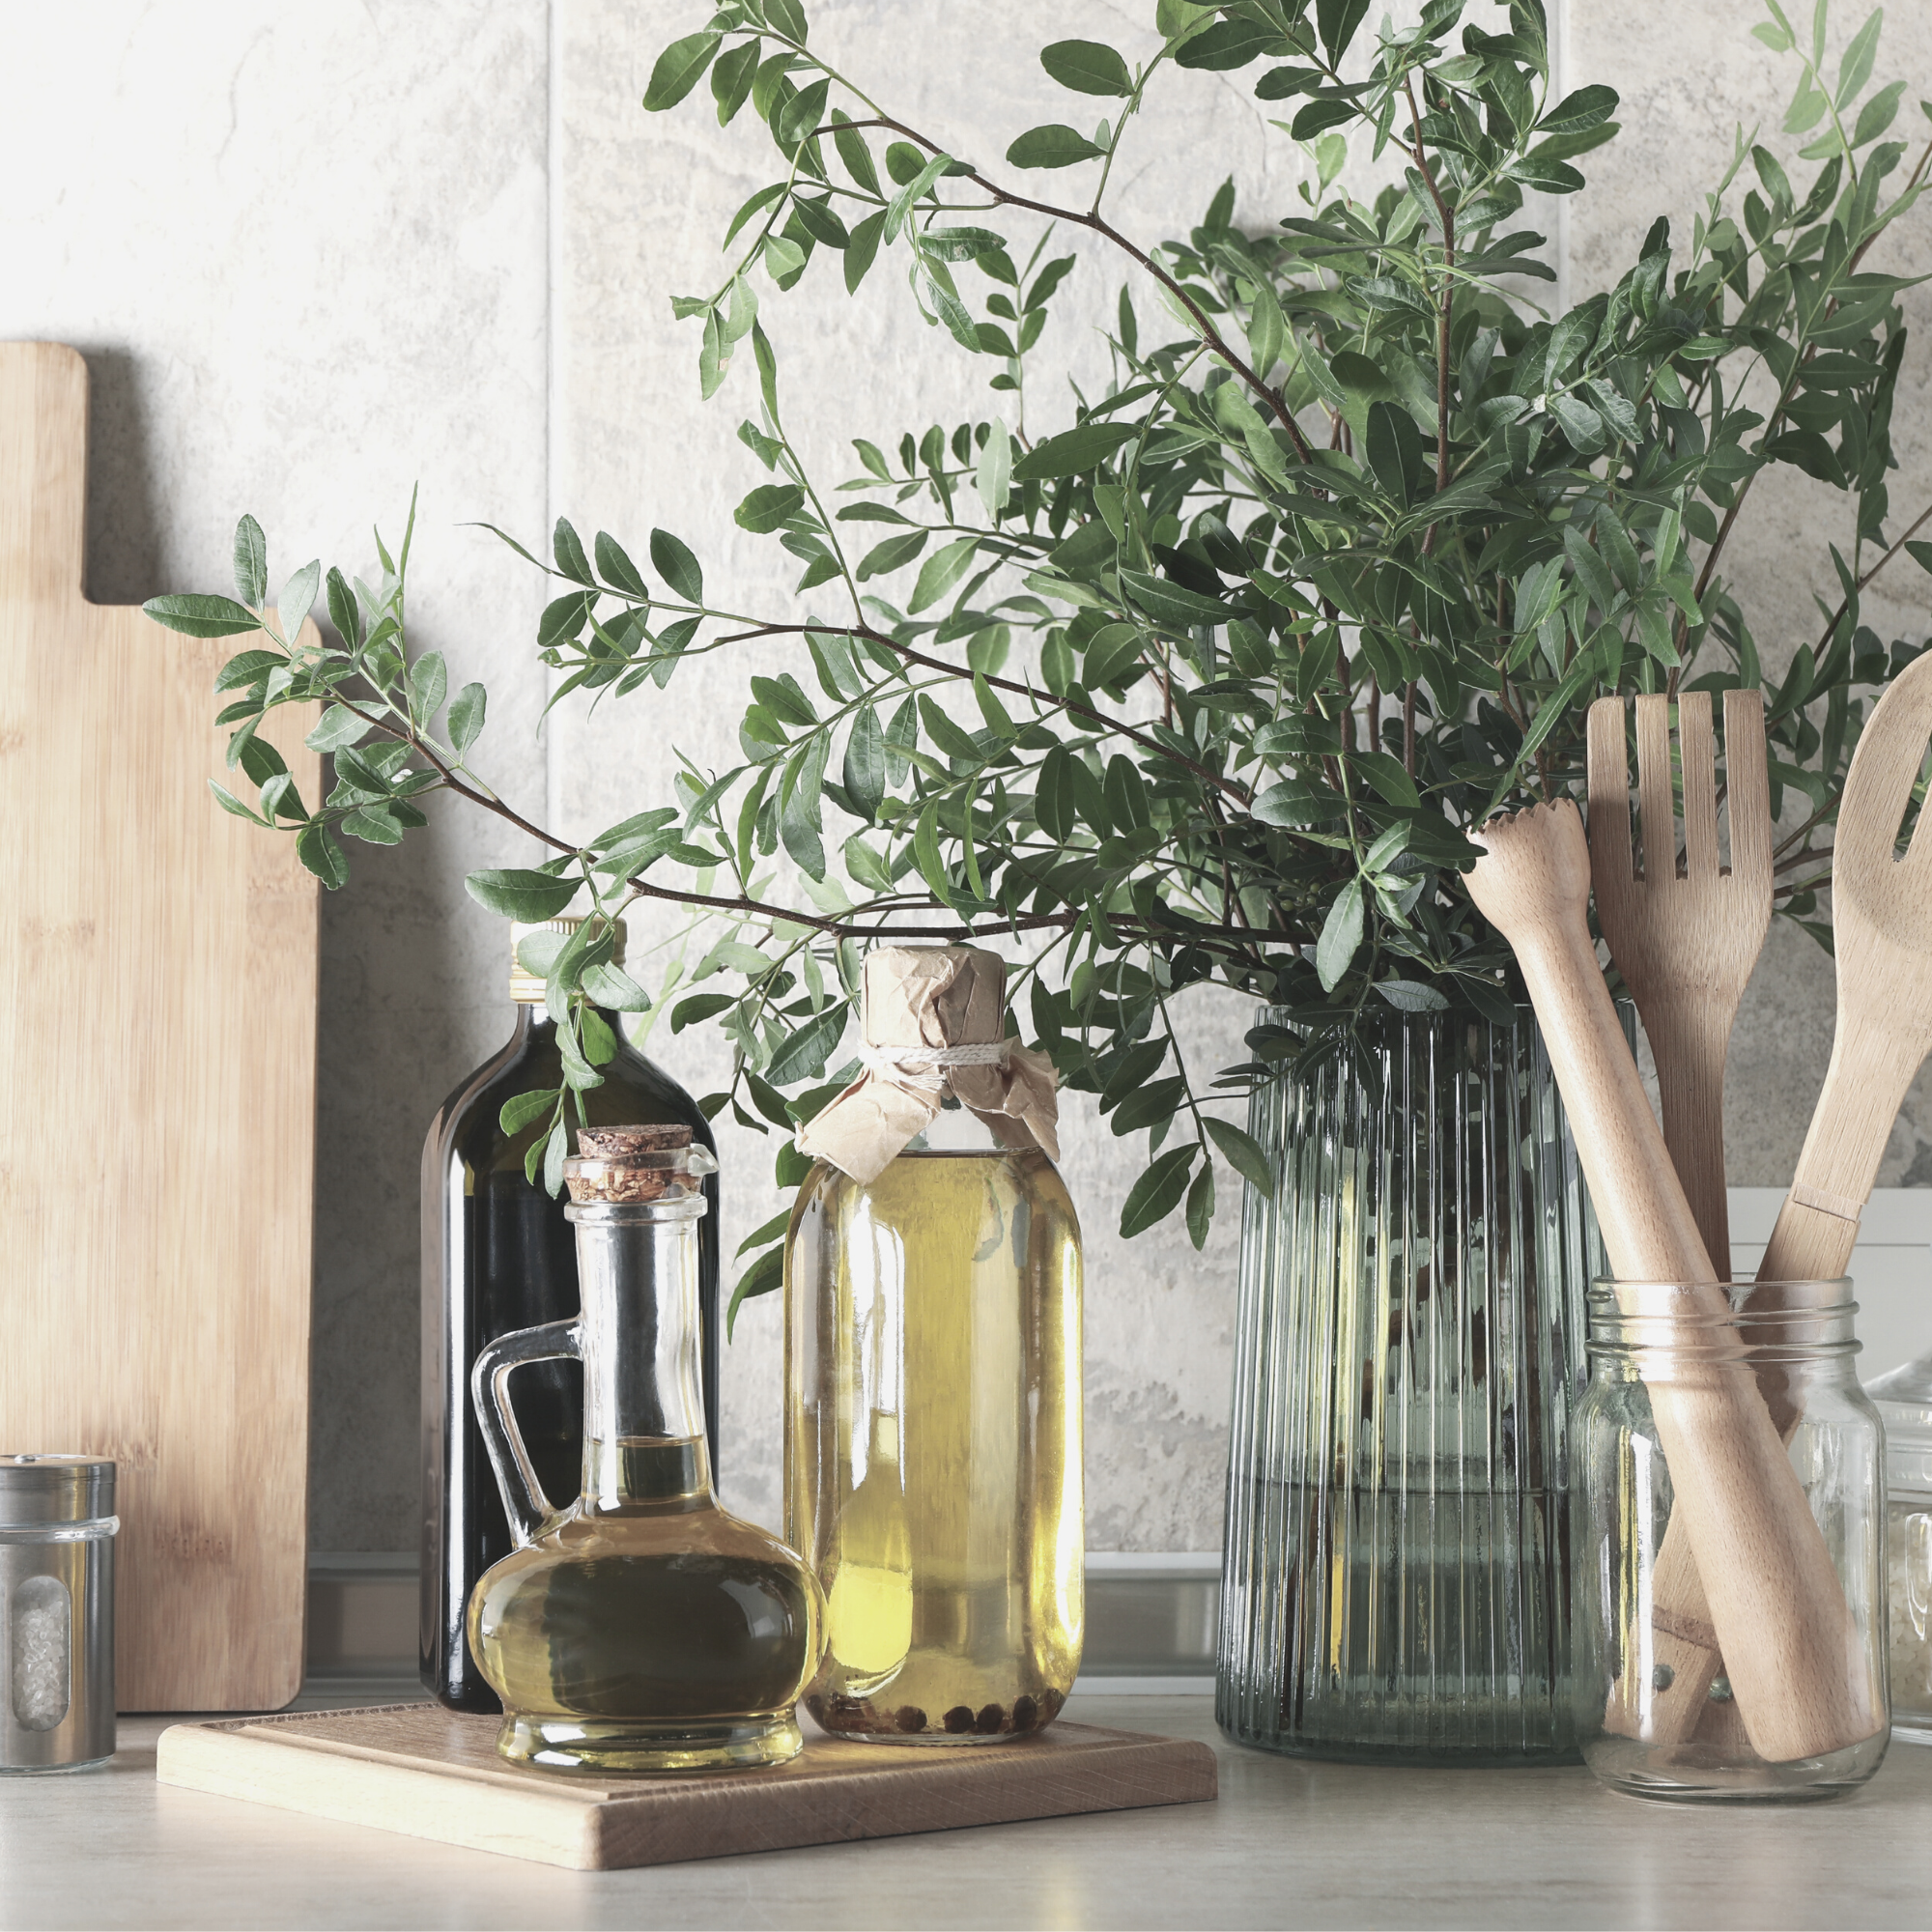 Design Your Kitchen With Wellbeing In Mind